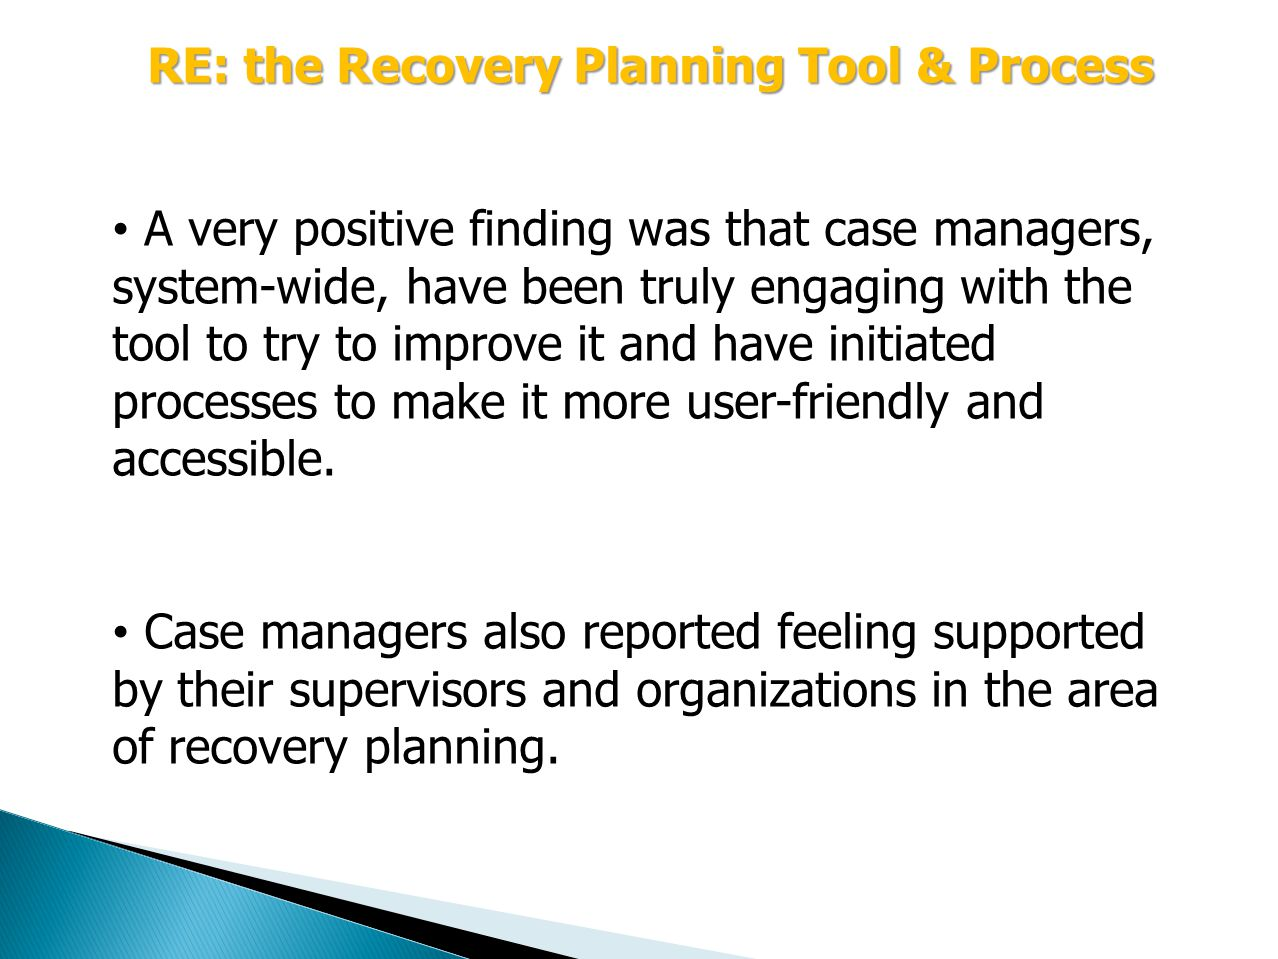 RE: the Recovery Planning Tool & Process A very positive finding was that case managers, system-wide, have been truly engaging with the tool to try to improve it and have initiated processes to make it more user-friendly and accessible.